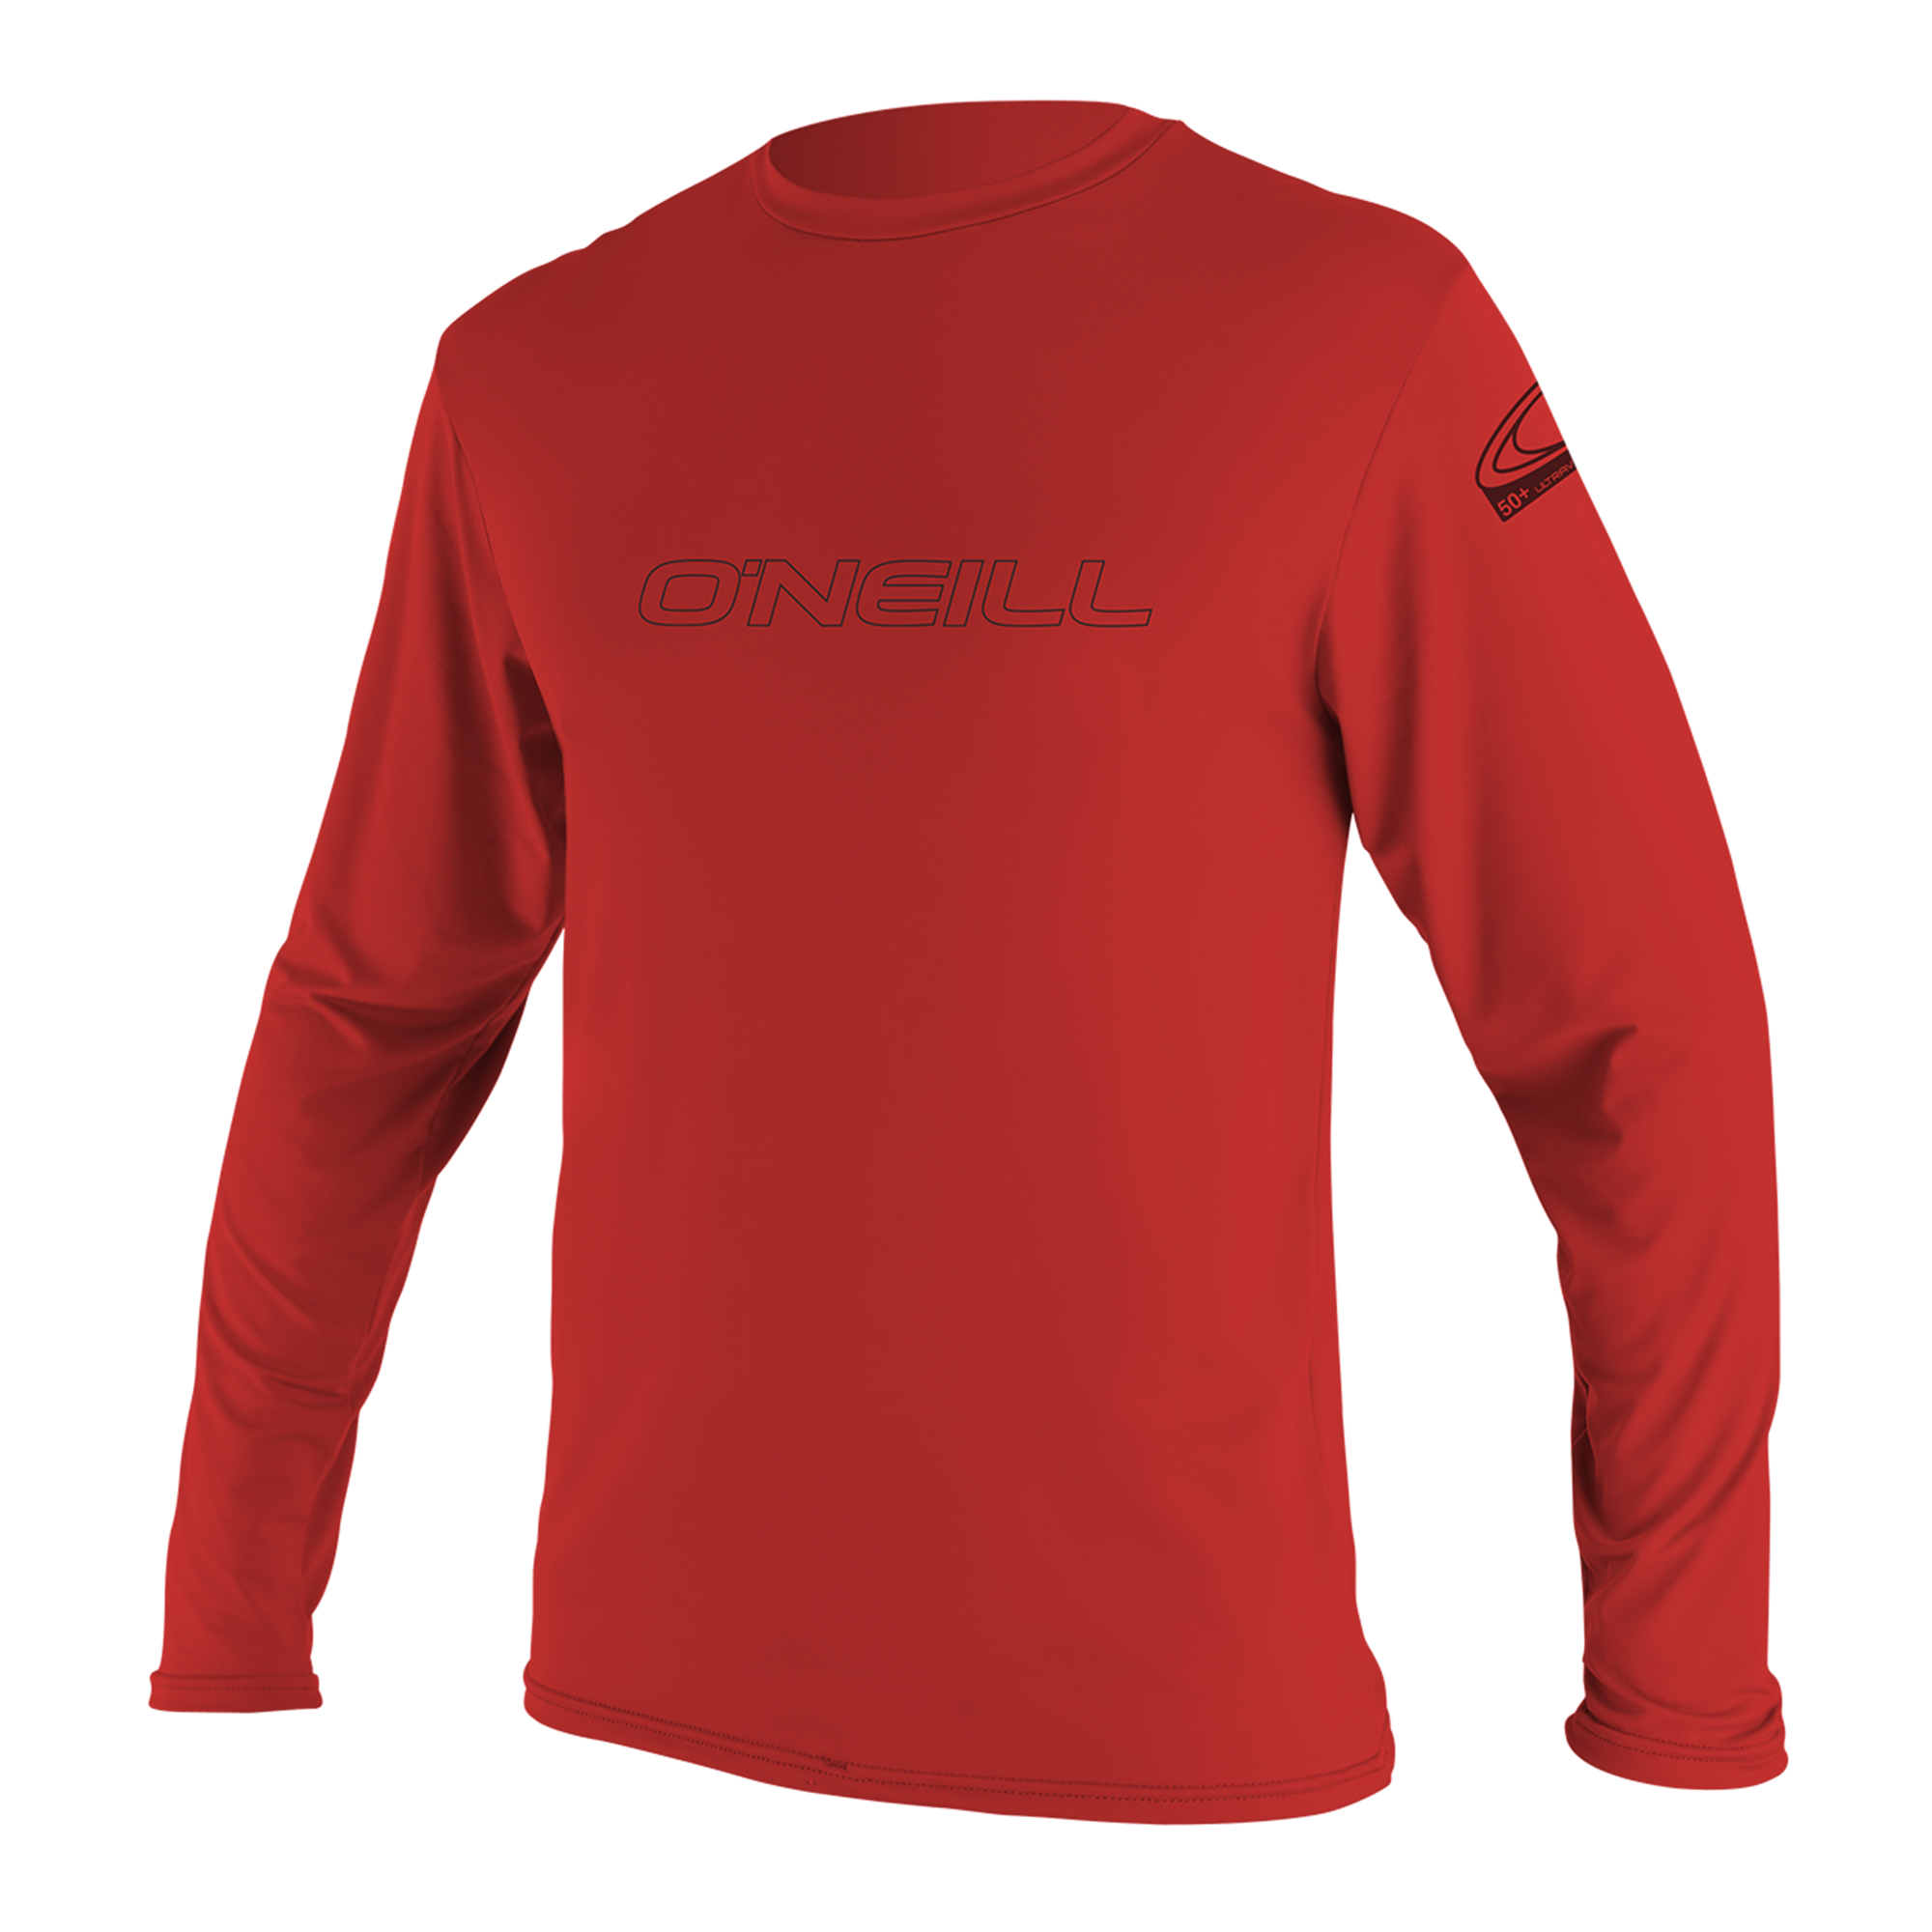 O'NEILL MEN'S BASIC SKINS 50 + LONG SLEEVE (Multiple Colors and Sizes)